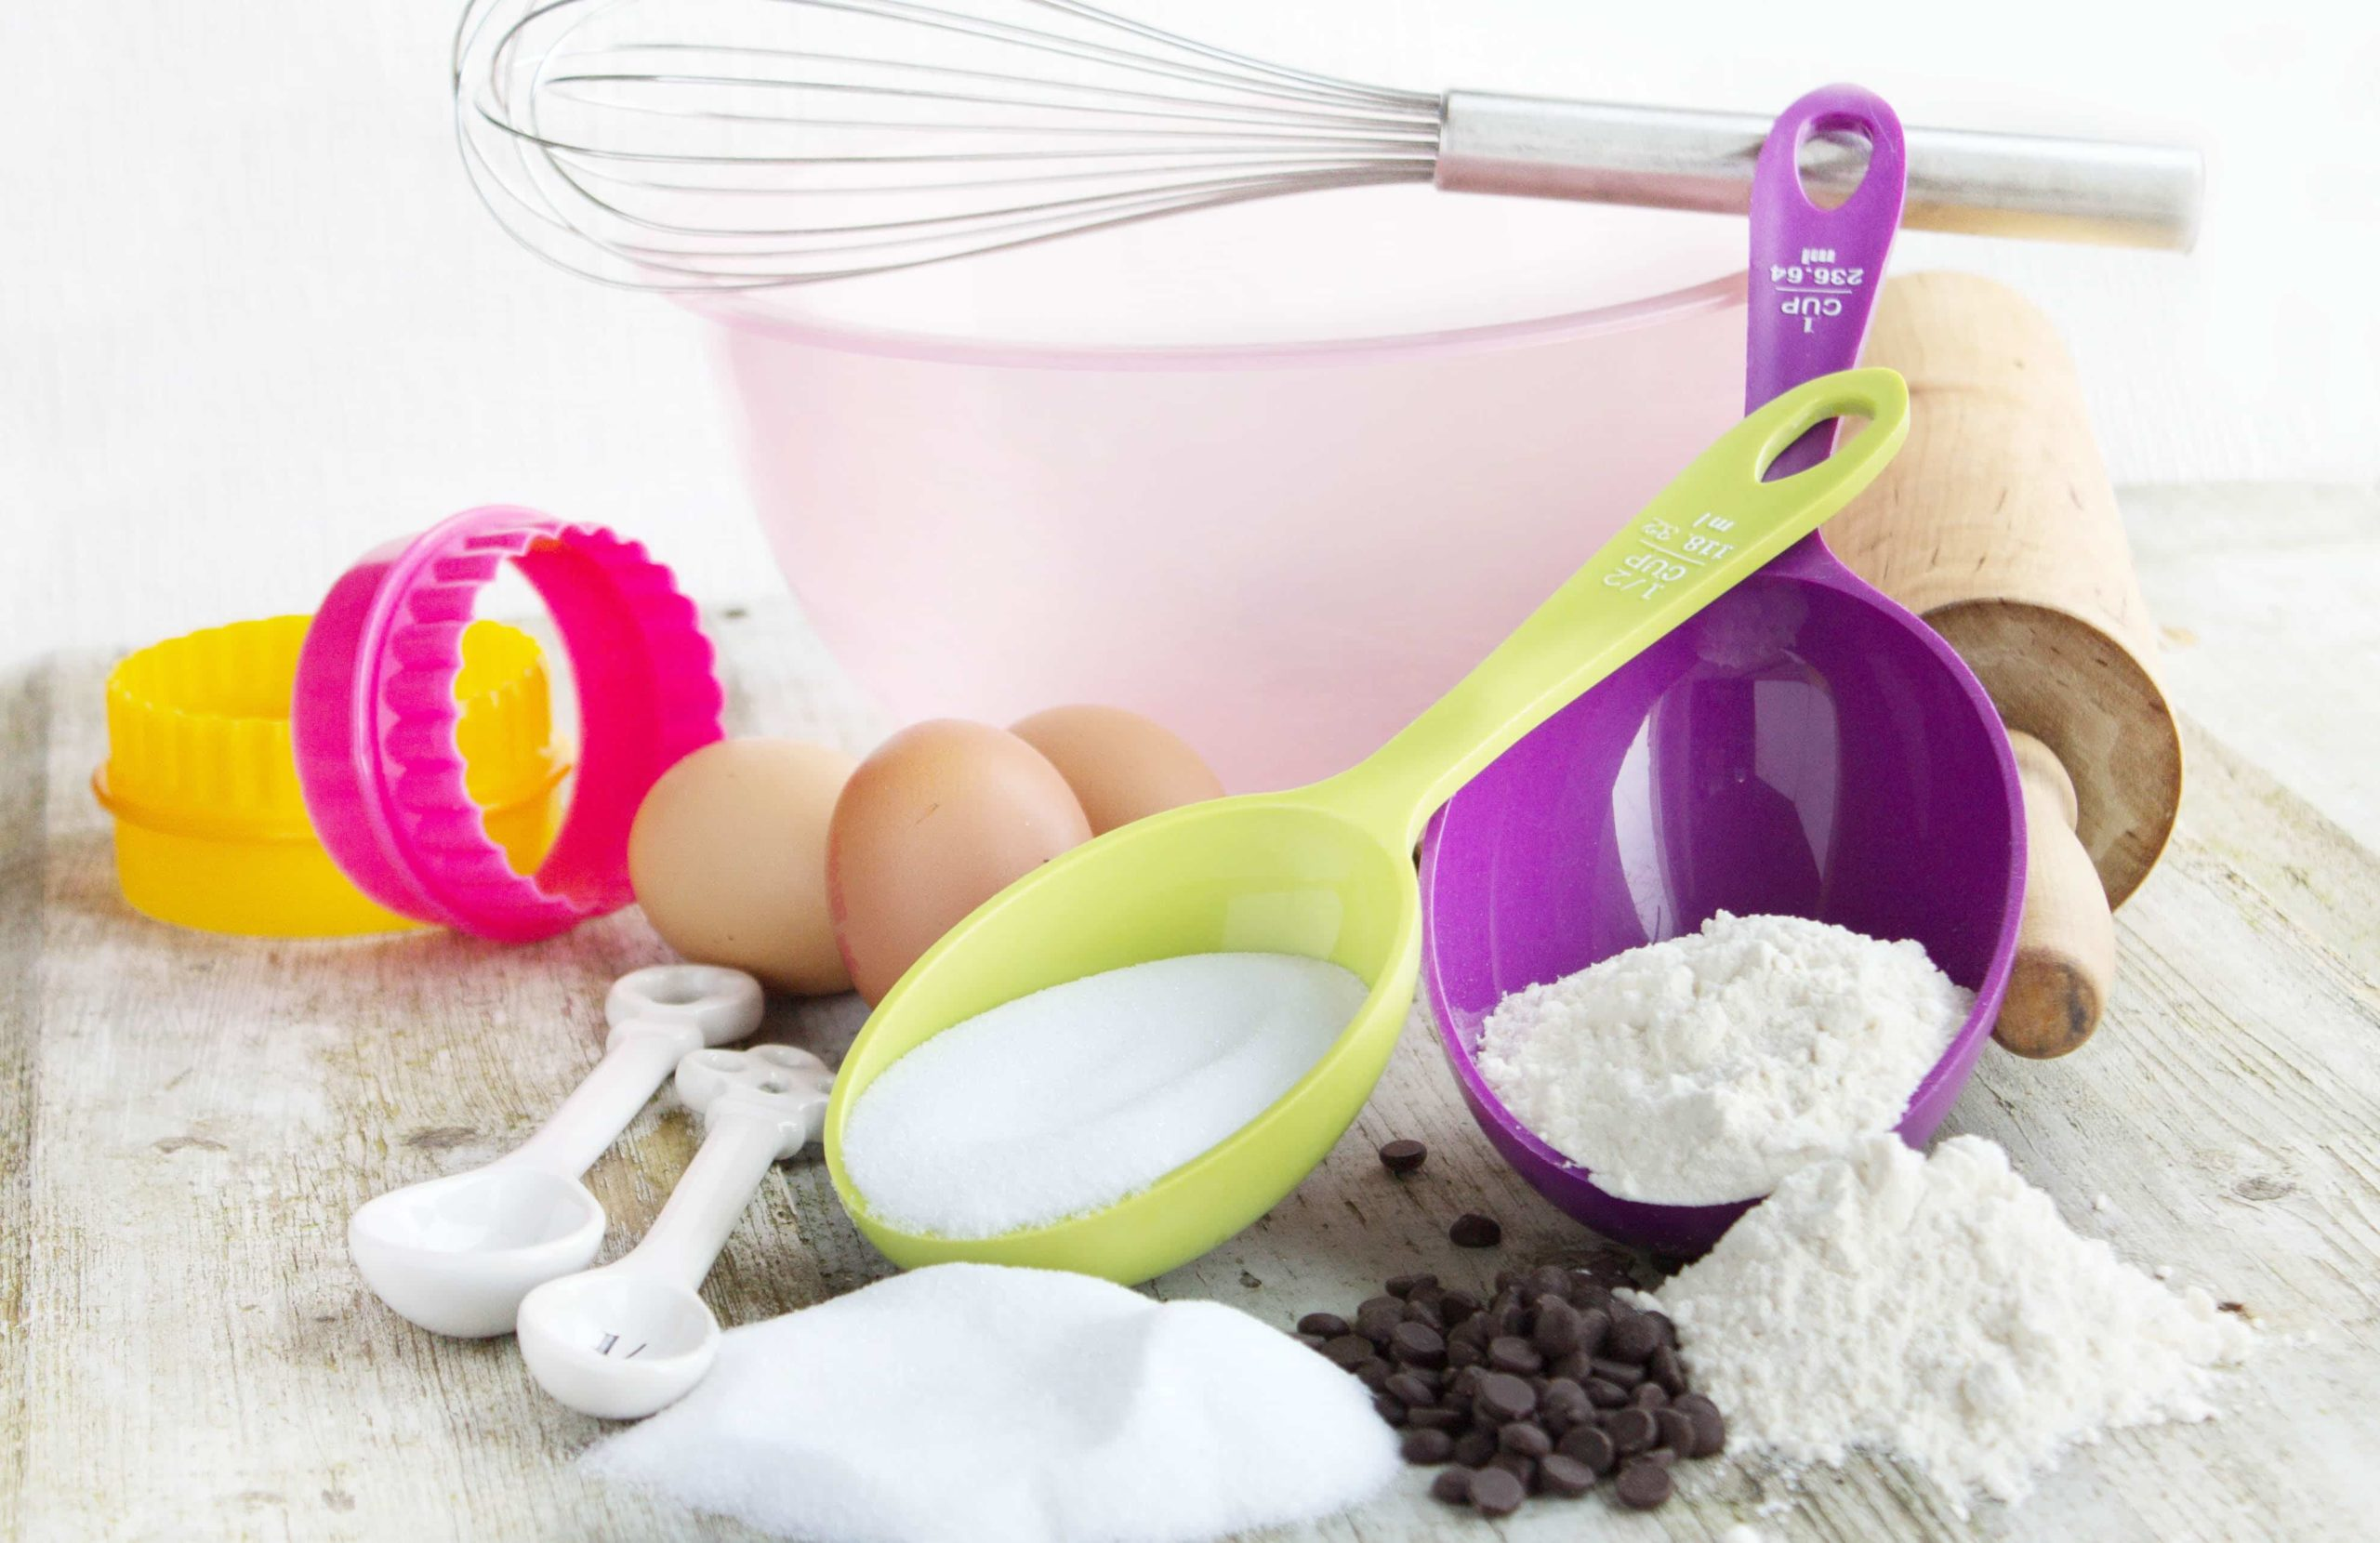 A plastic bowl, whisk, cookie cutters, measuring spoons and ingredients used for baking